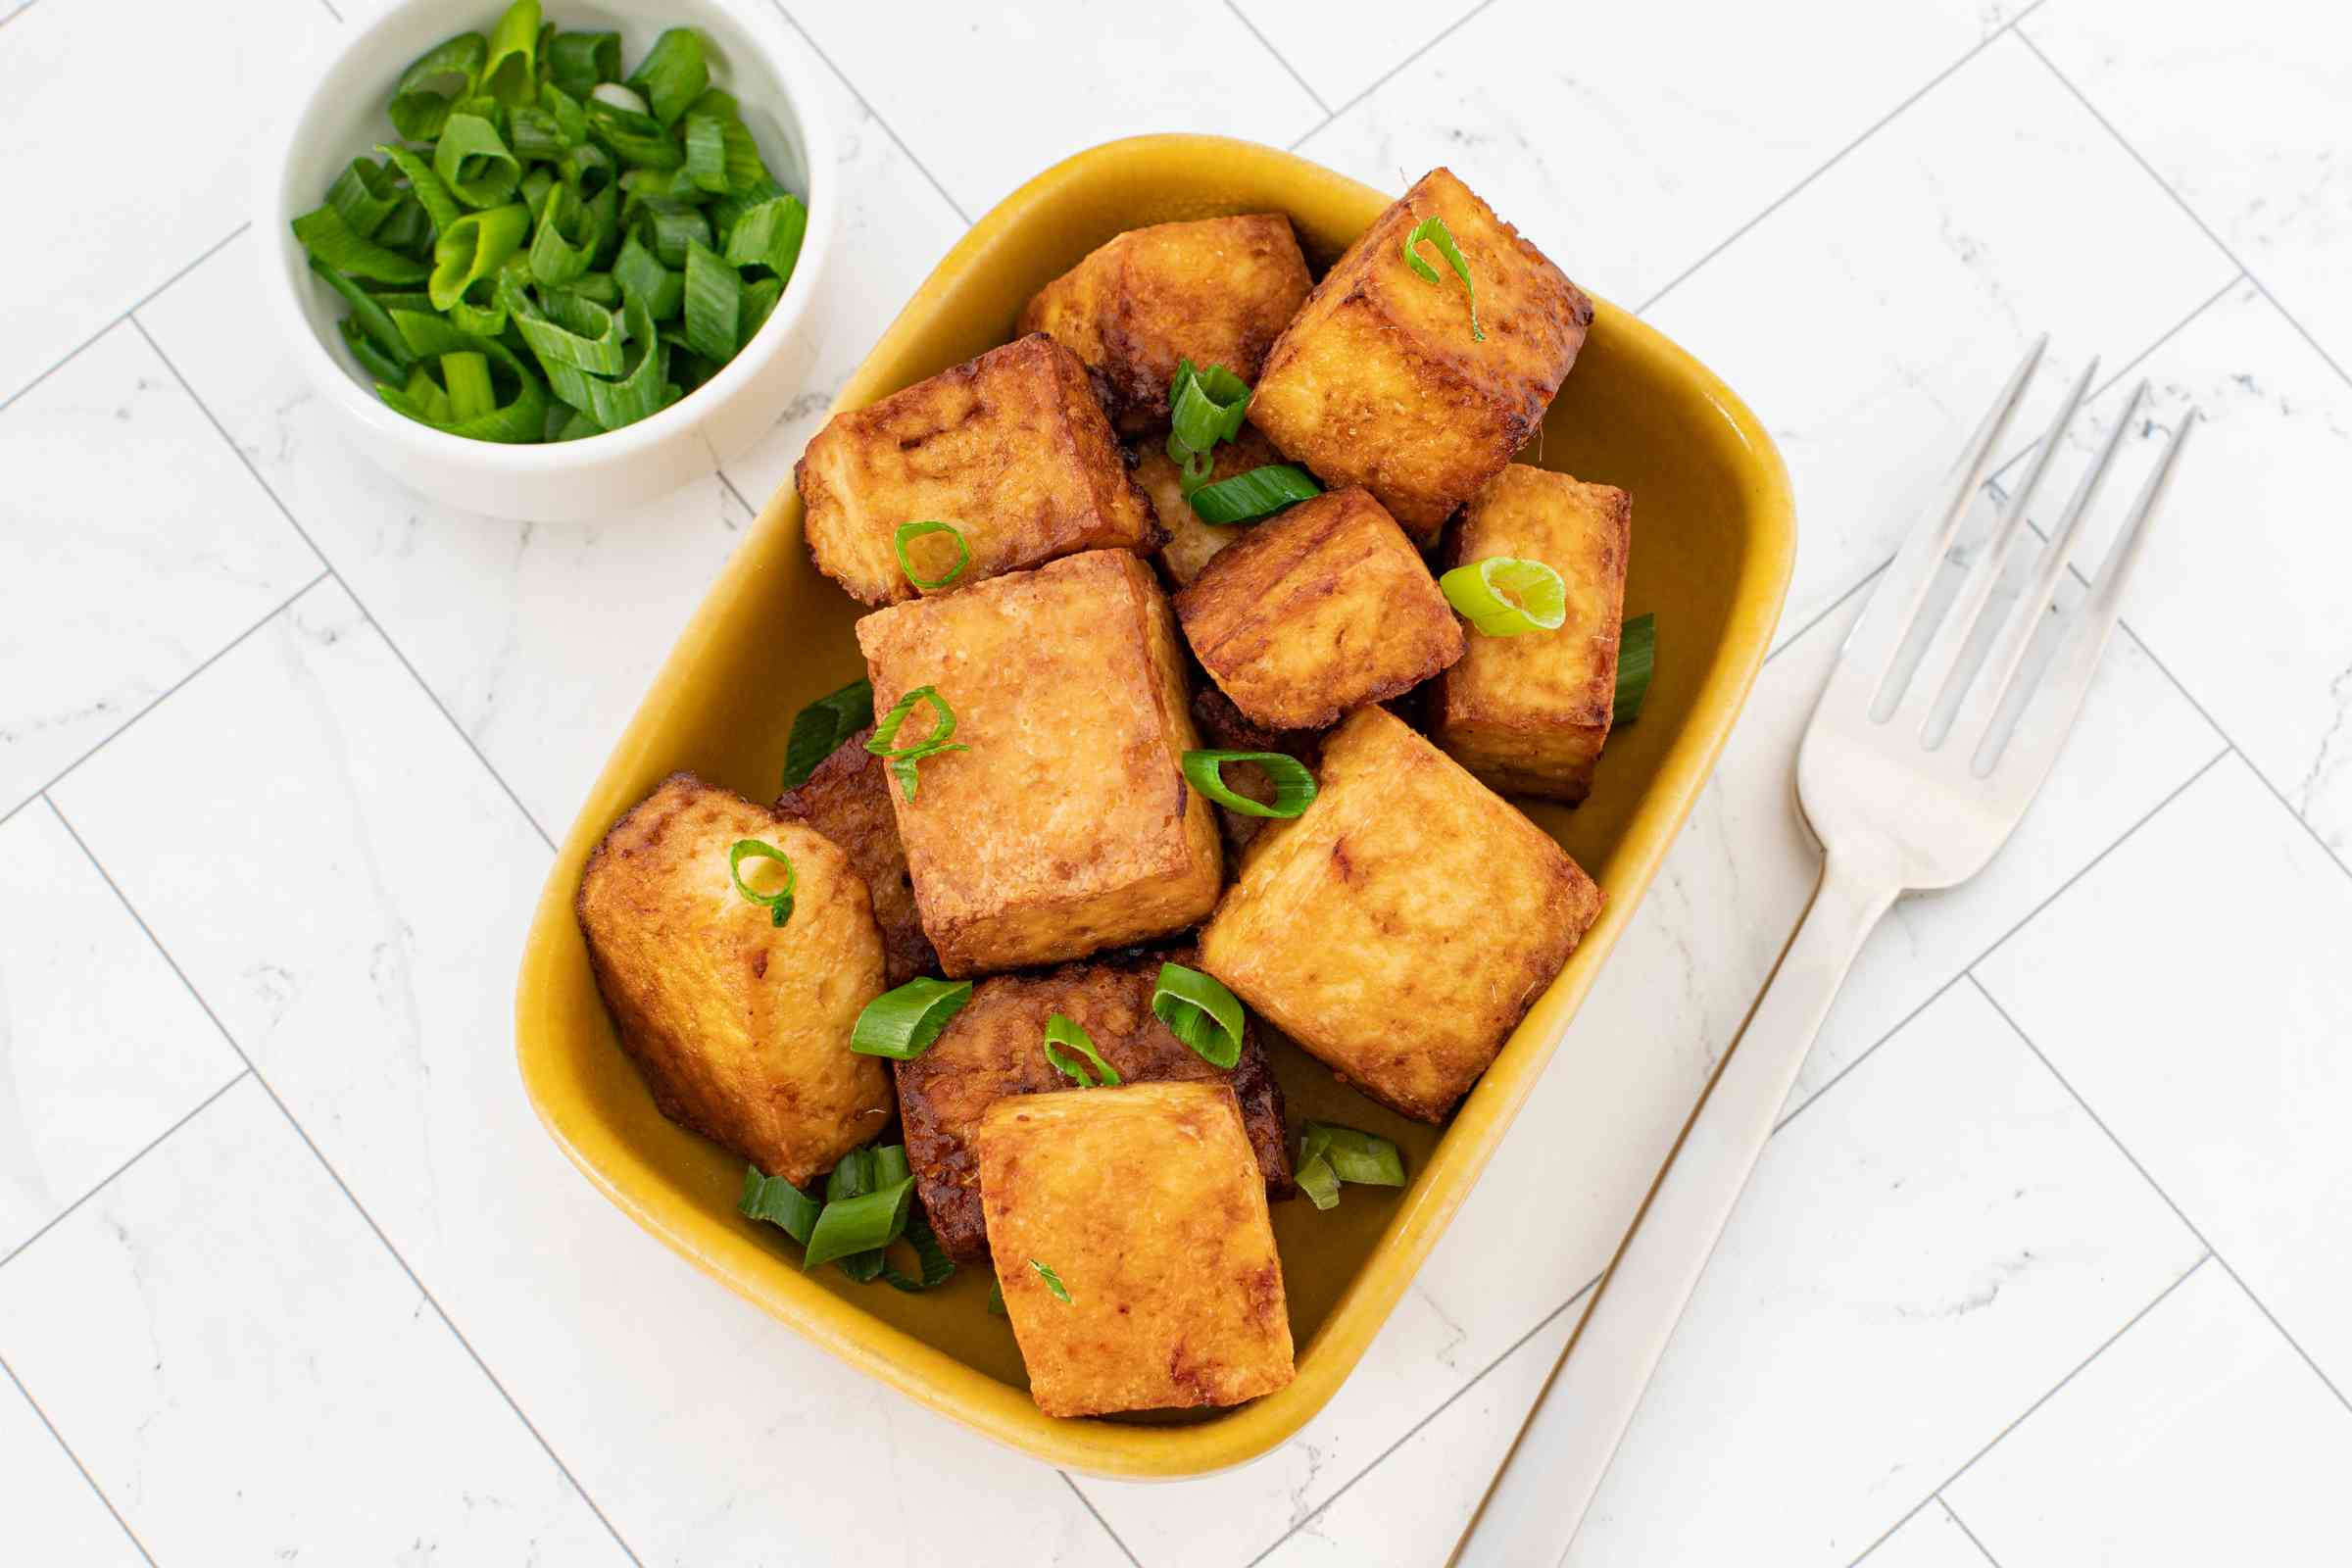 Air fryer tofu in a small serving dish